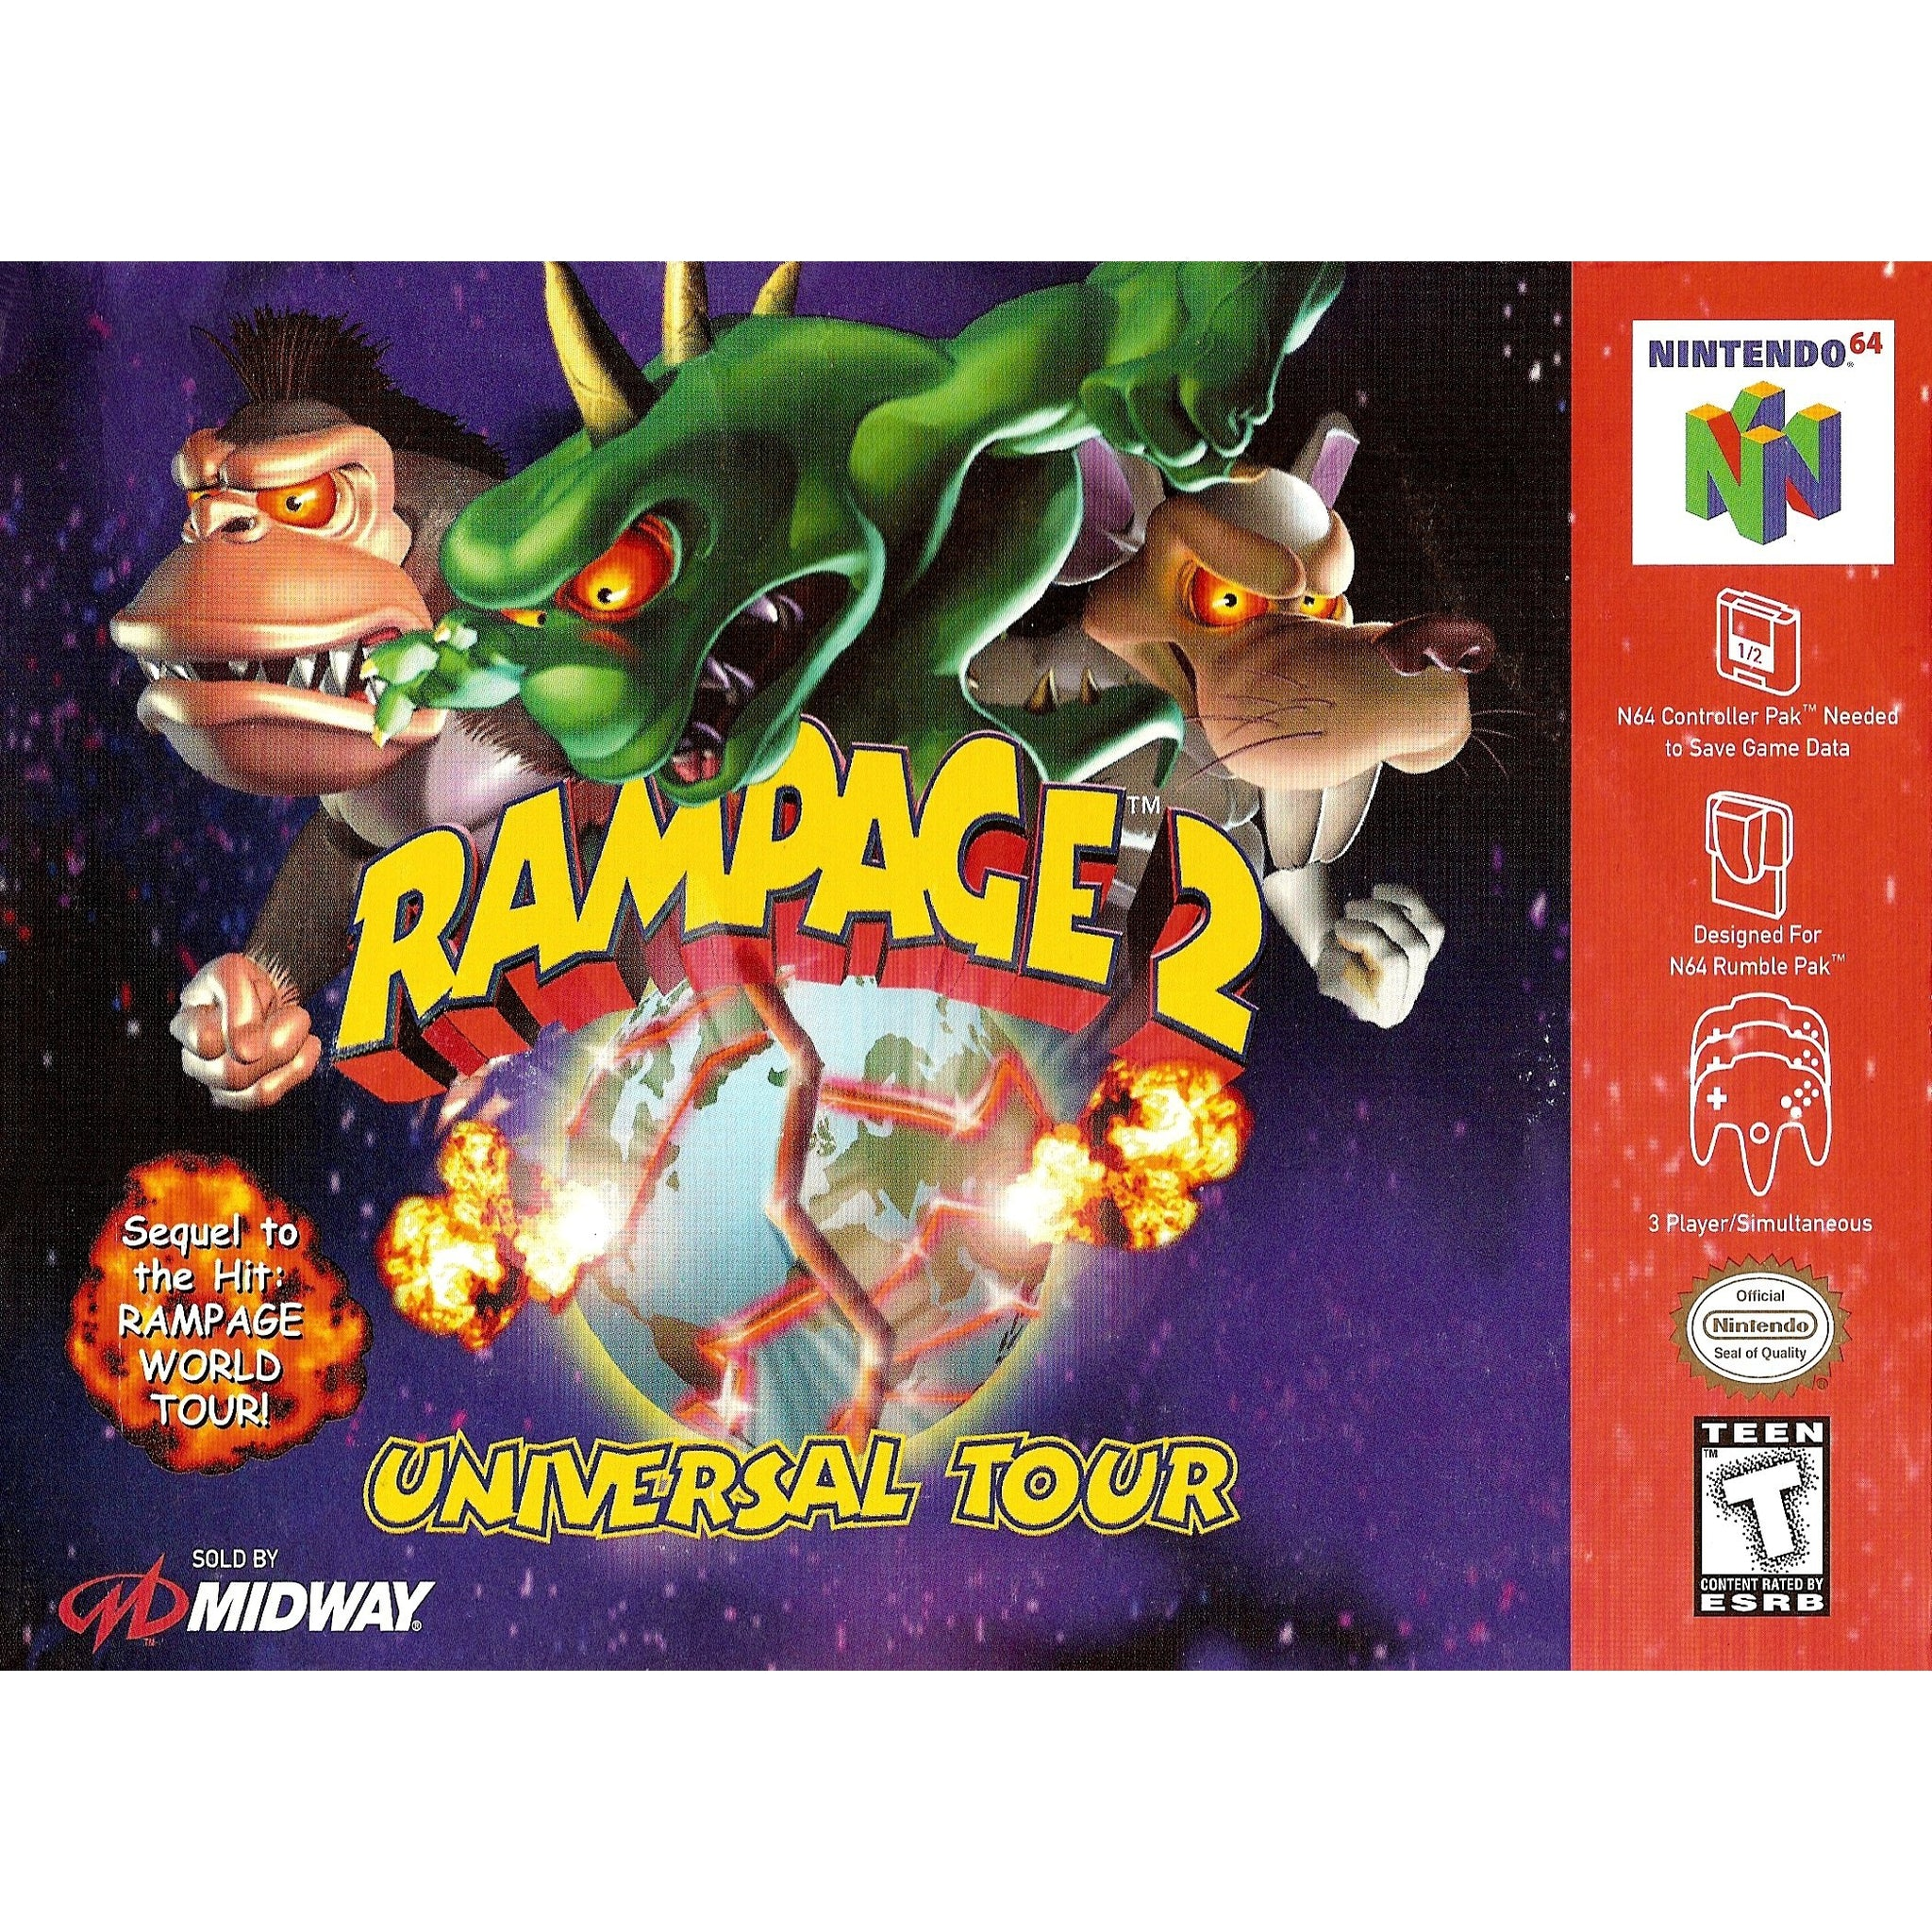 Rampage 2: Universal Tour - Authentic Nintendo 64 (N64) Game Cartridge - YourGamingShop.com - Buy, Sell, Trade Video Games Online. 120 Day Warranty. Satisfaction Guaranteed.